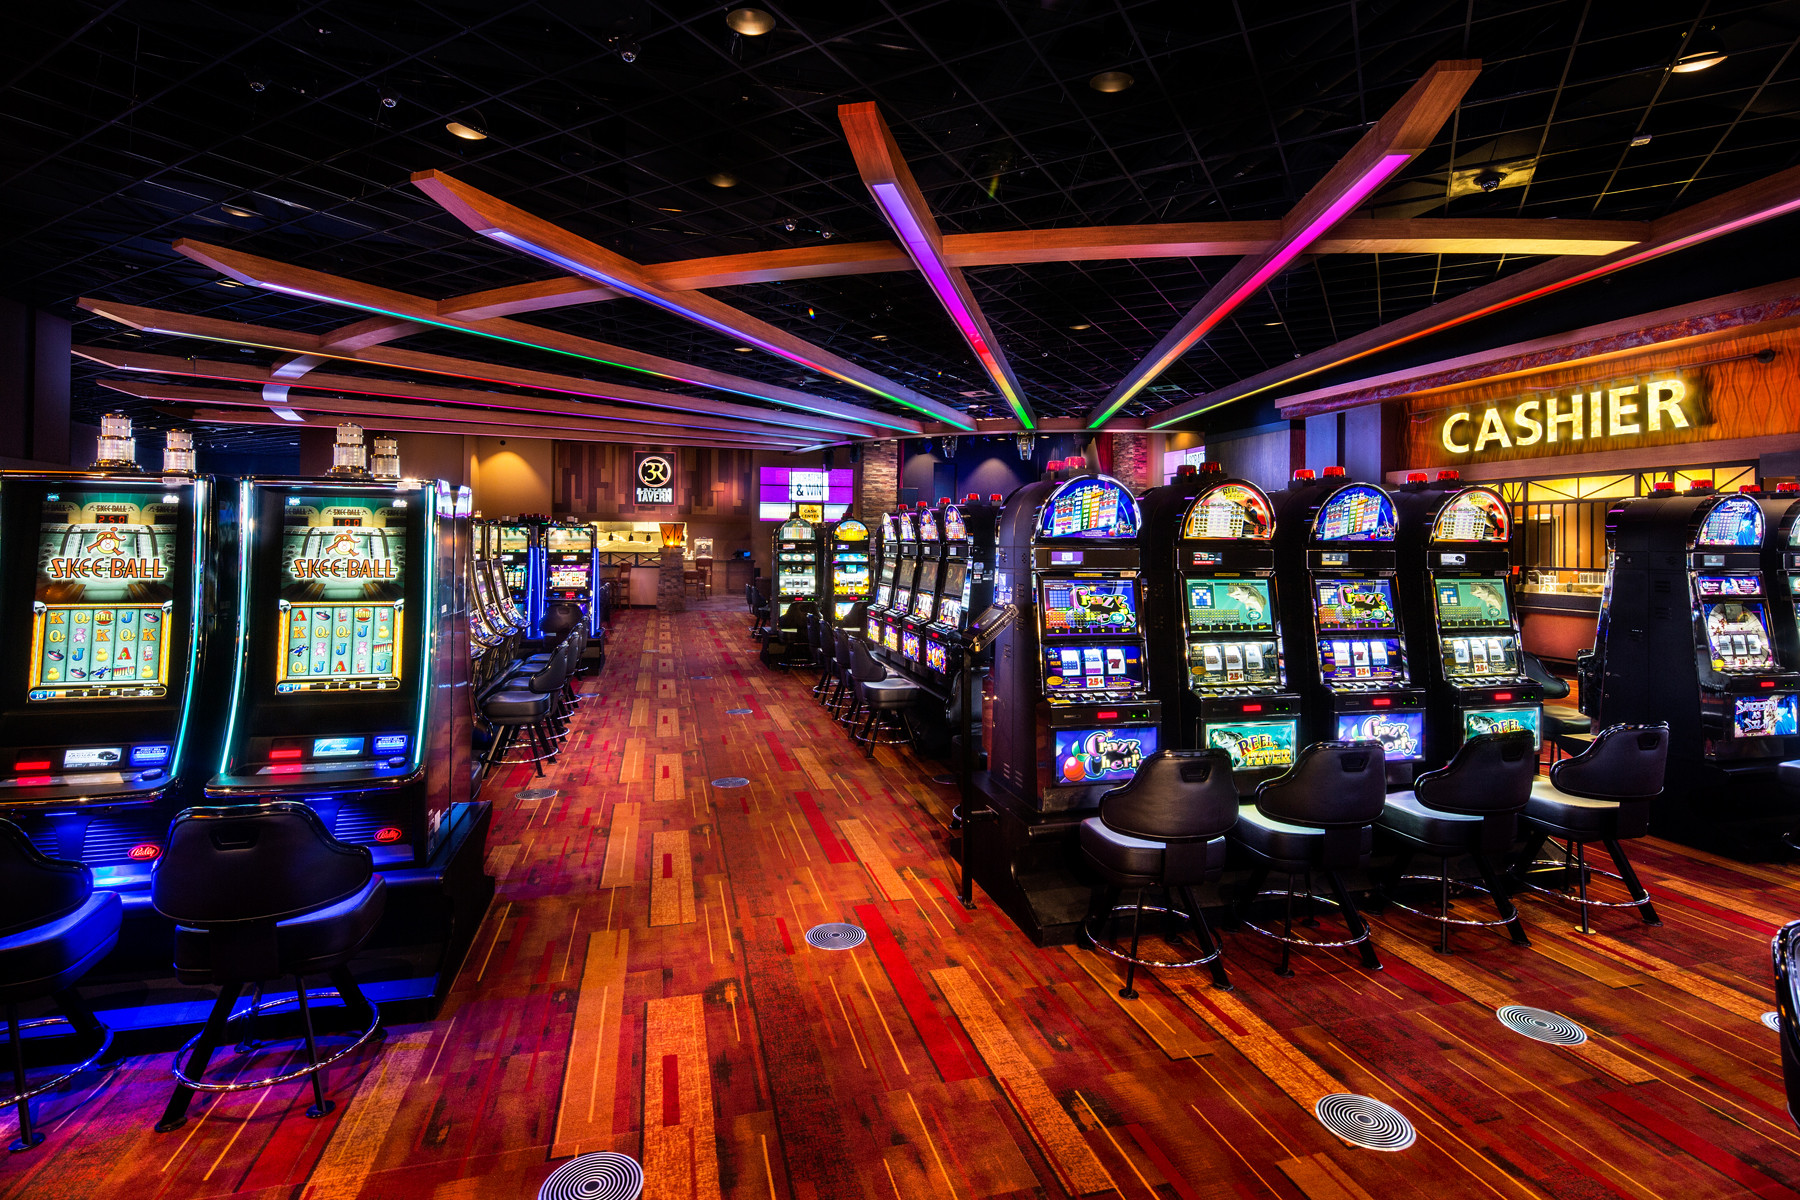 Casino Backgrounds On Wallpapers Vista Slot Machine Casino Background 2915762 Hd Wallpaper Backgrounds Download